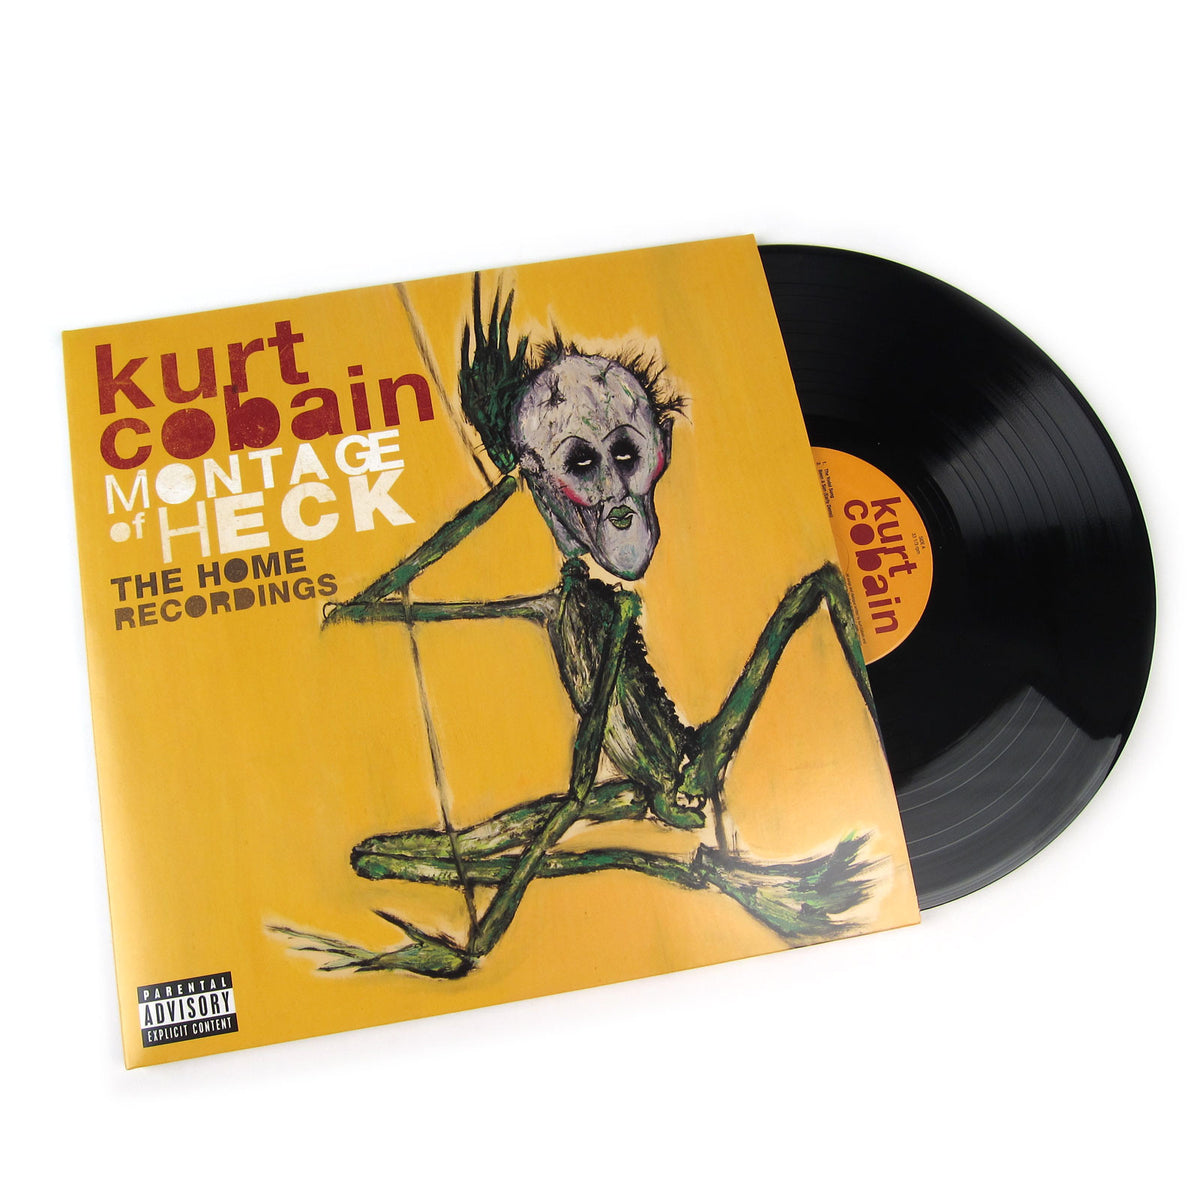 Kurt Cobain: Montage Of Heck - The Home Recordings (180g) Vinyl 2LP